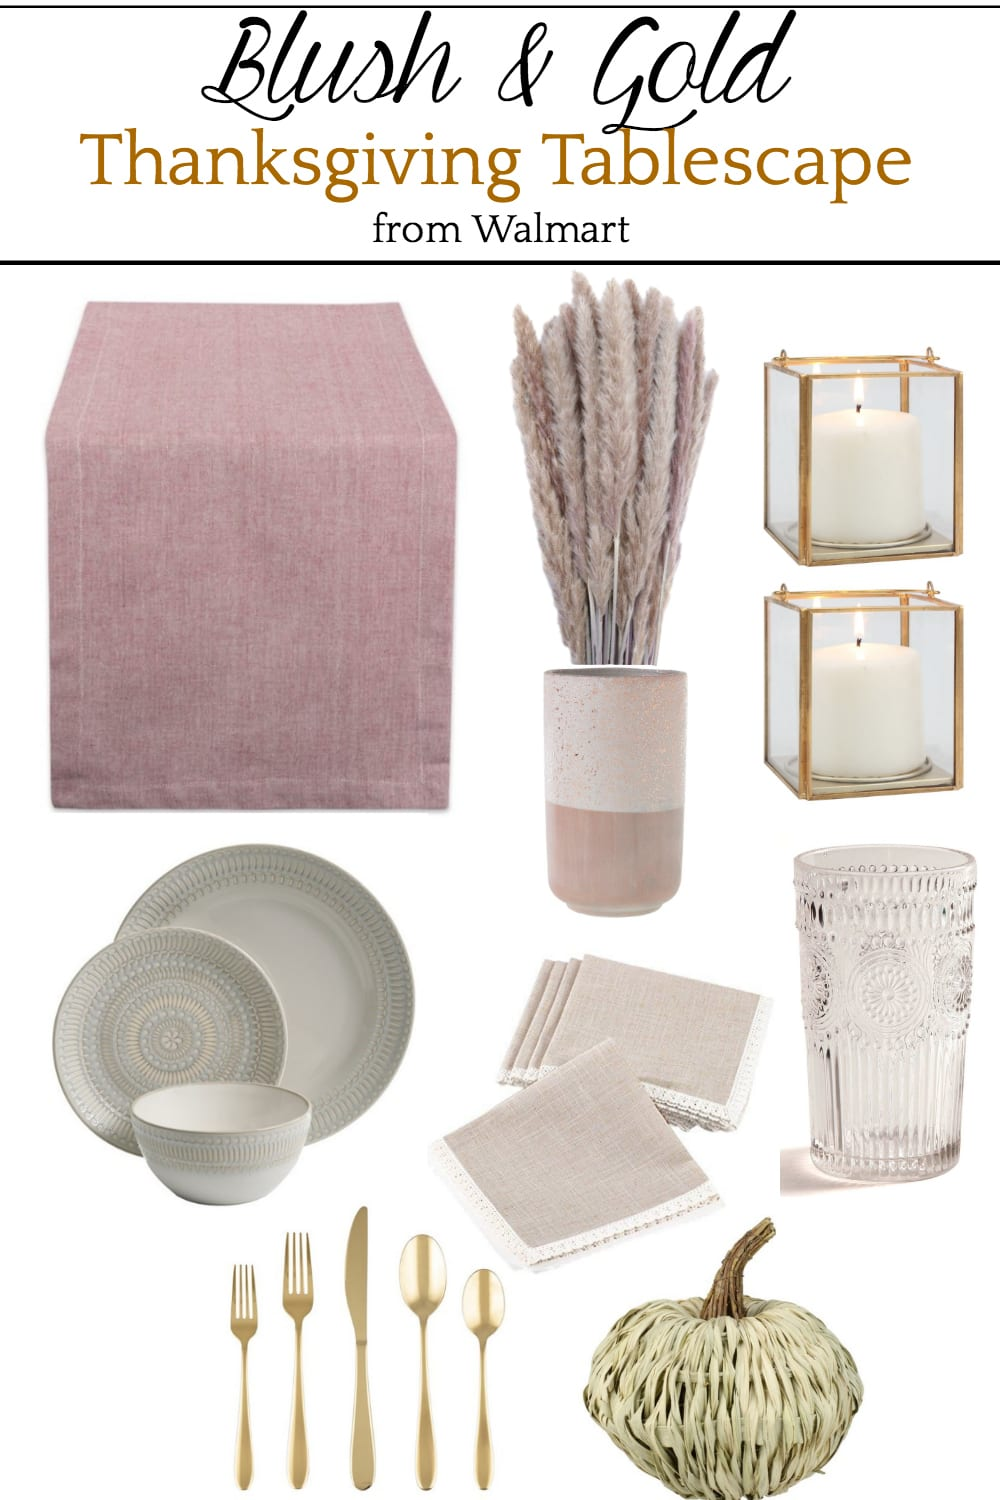 Blush and Gold Thanksgiving Tablescape Mood Board